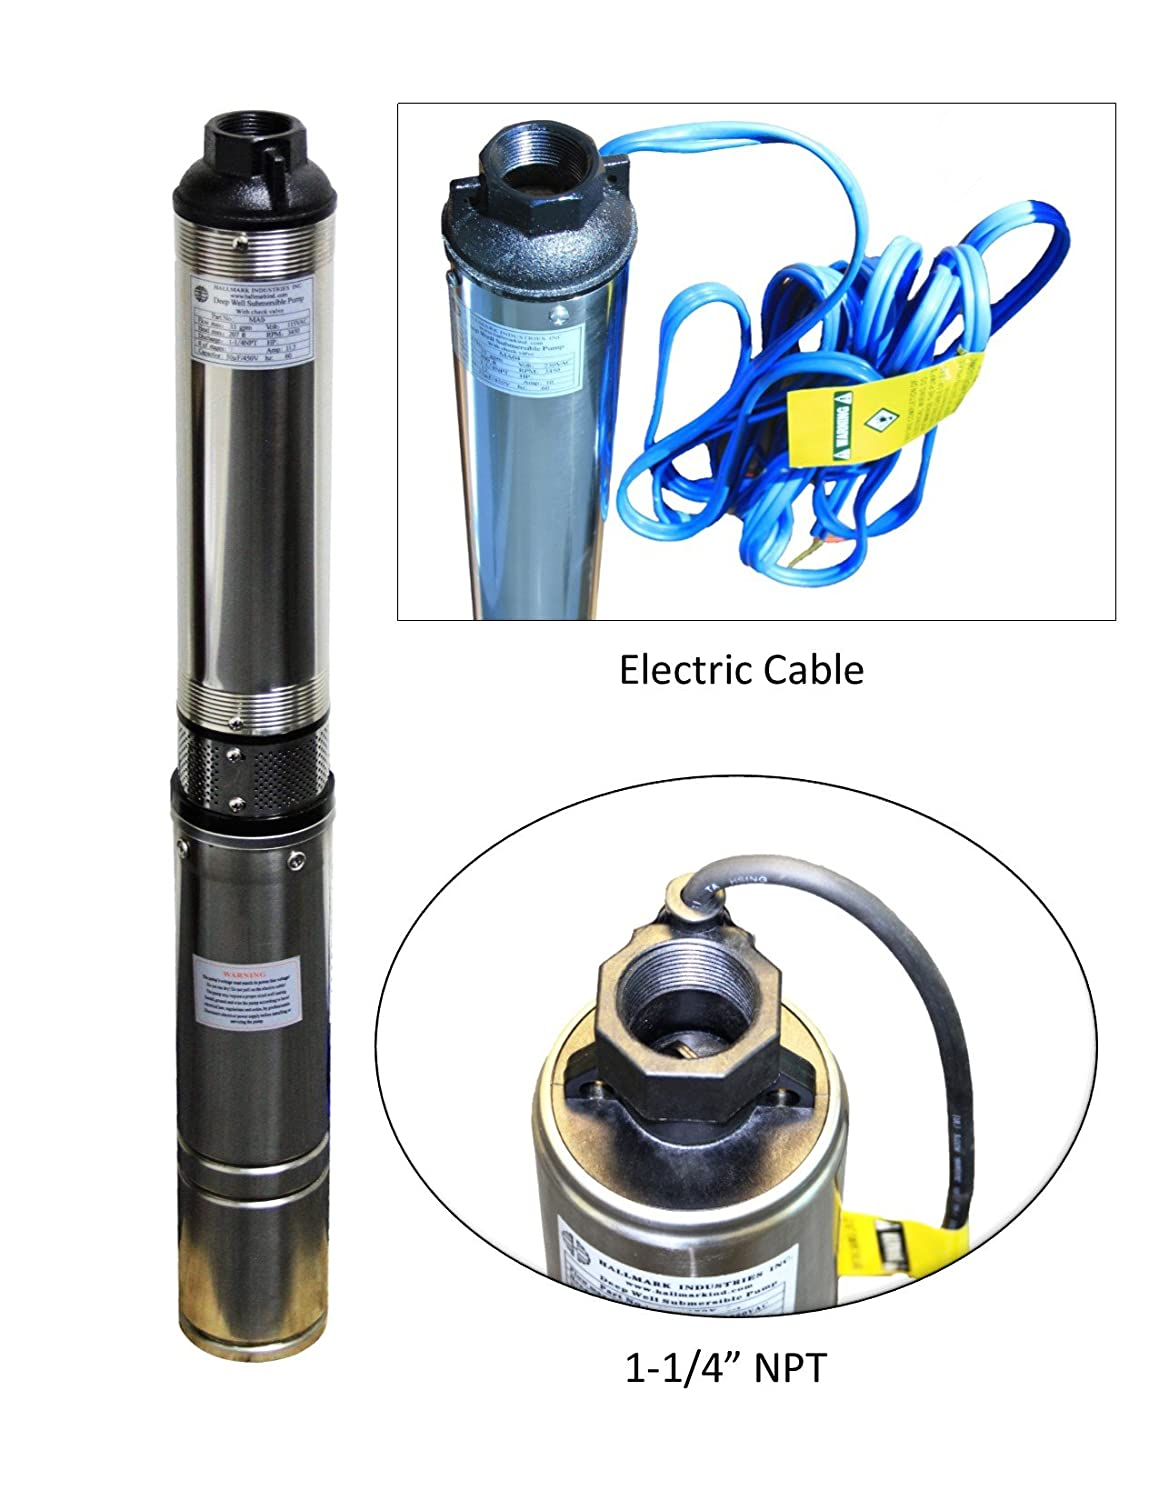 "Hallmark Industries MA0343X-4A Deep Well Submersible Pump, 1/2 hp, 230V, 60  Hz, 25 GPM, 150' Head, Stainless Steel, 4"": Amazon.com: Industrial &  Scientific"